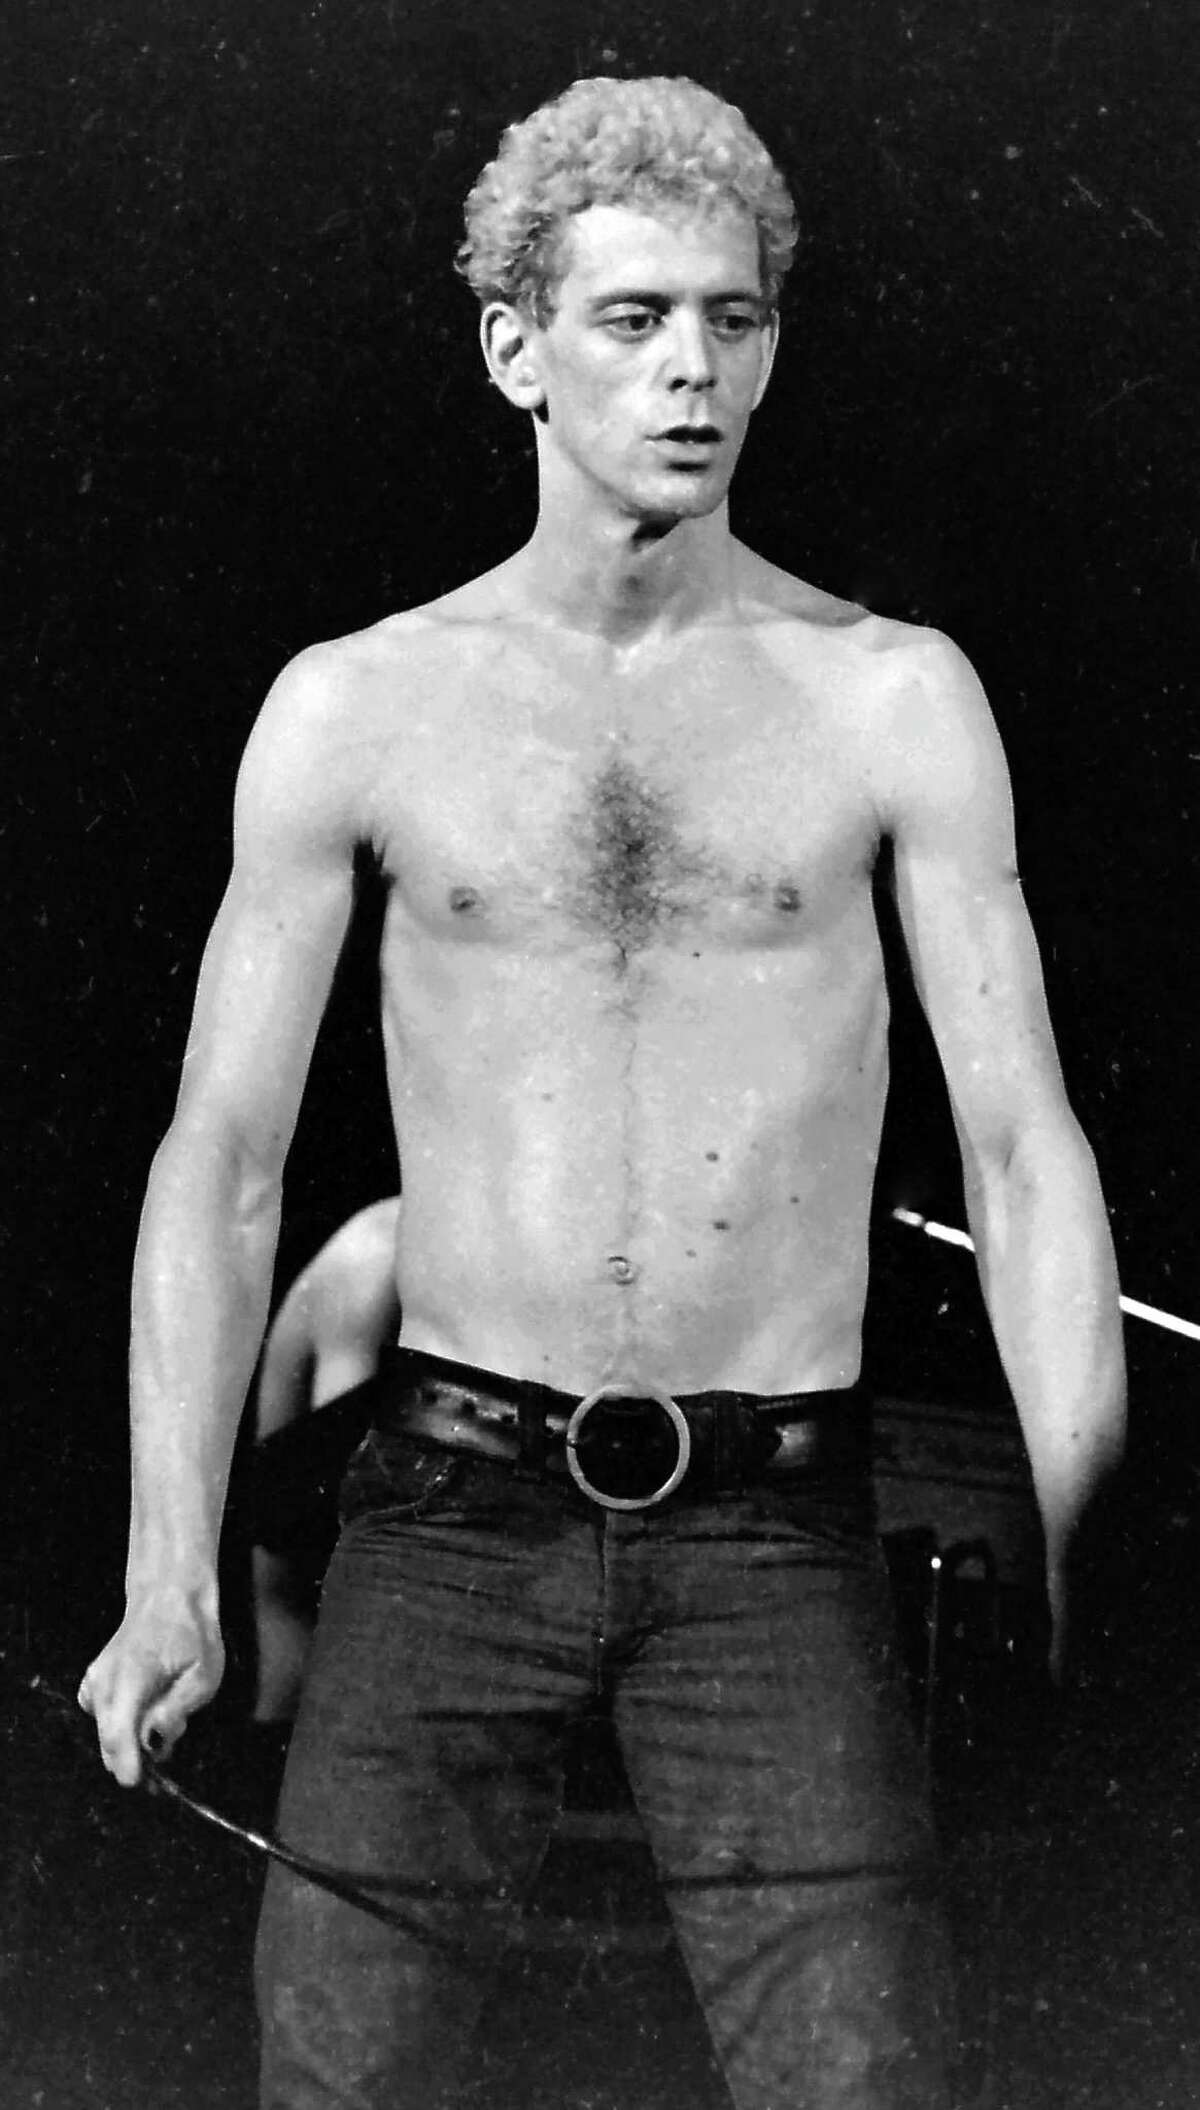 Punk rock legend Lou Reed, shown here in 1974, passed away on Oct. 27, 2013. at the age of 71. Here are other notable punk musicians who are also in the beyond.